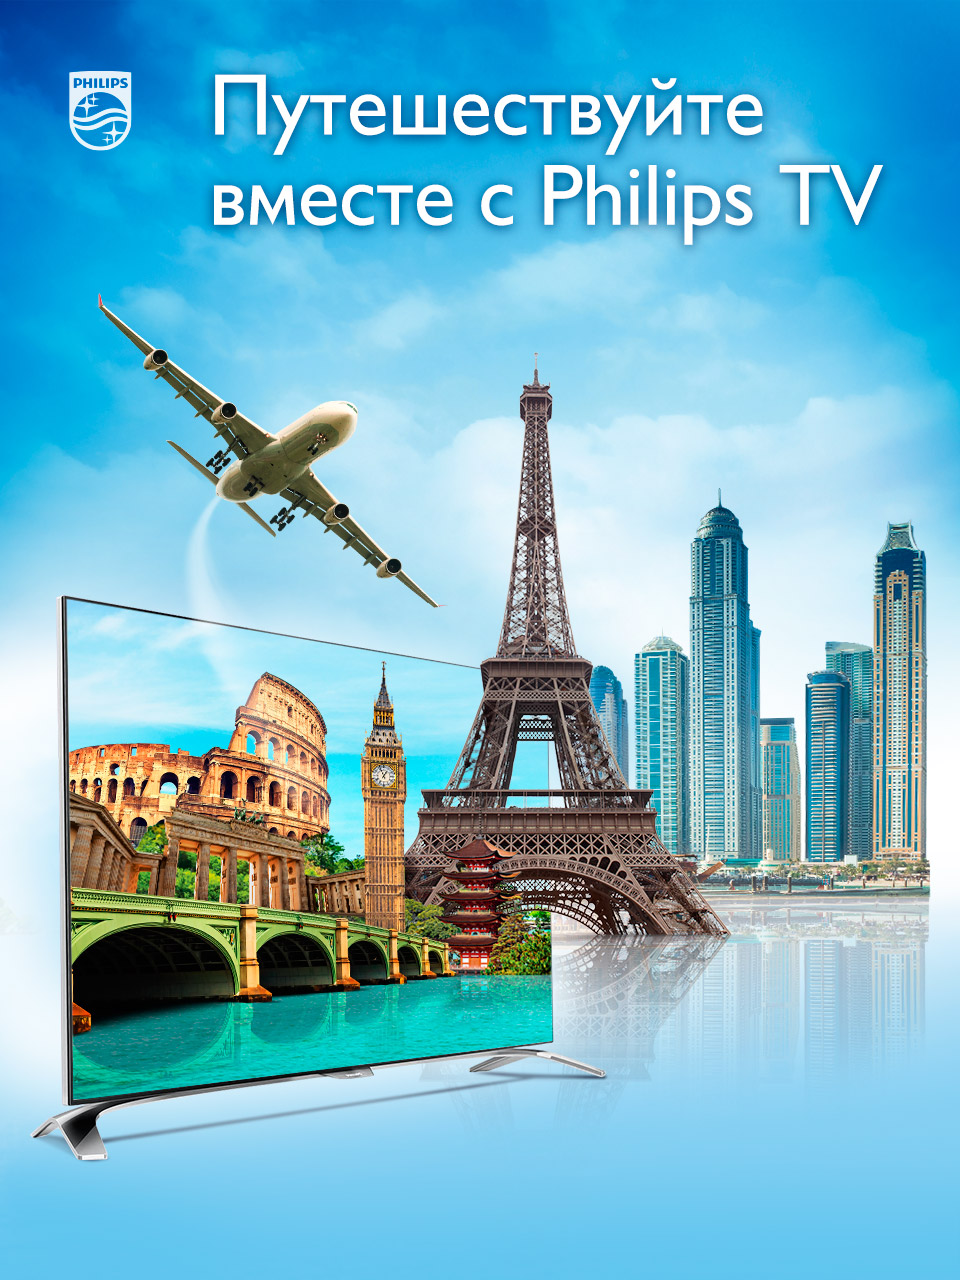 TV-promo-visuals-web-baner-960x1280px-01.jpg